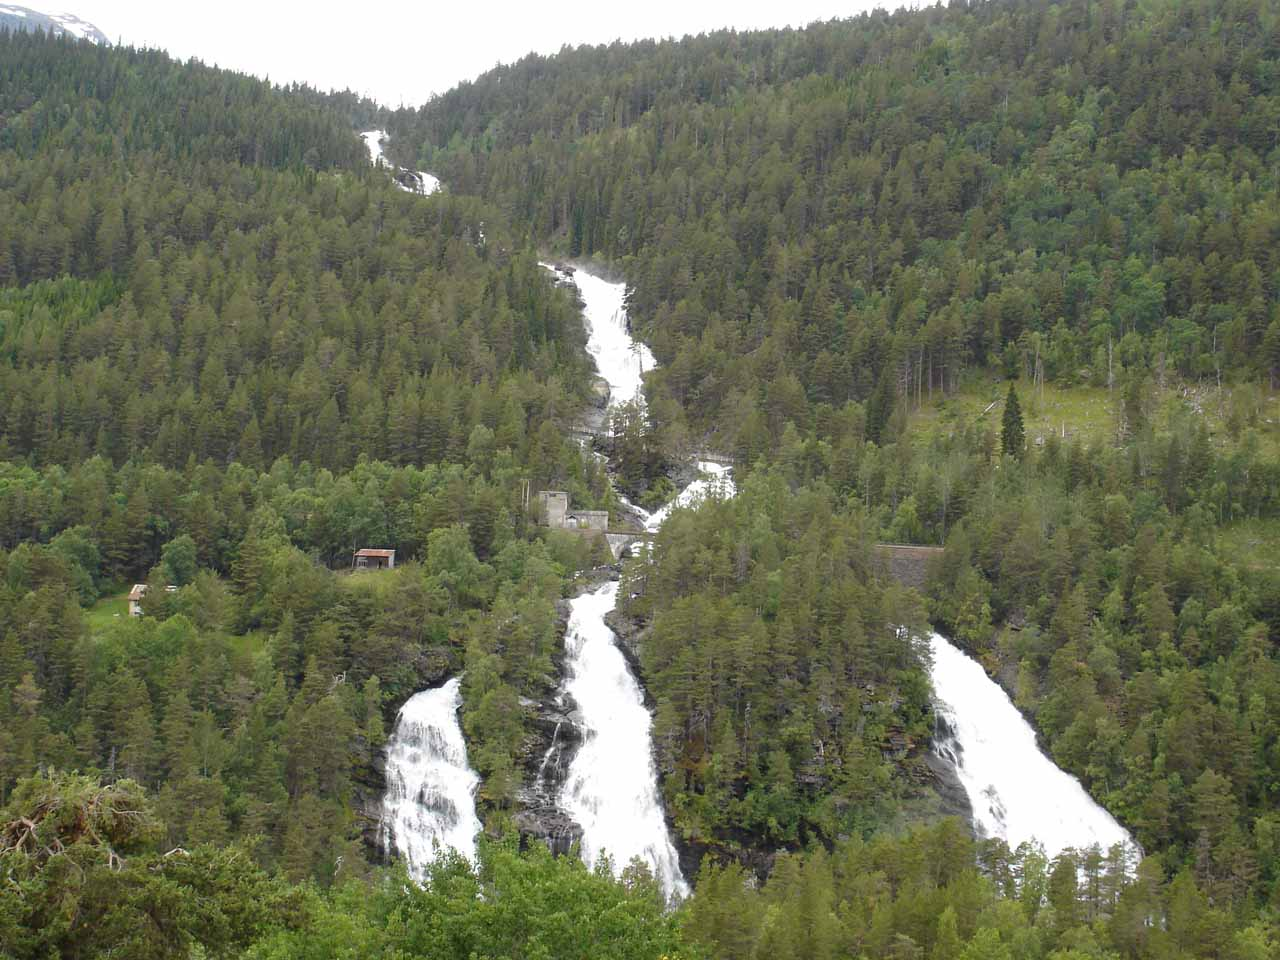 The next waterfall we saw further northwest on the E136 was the impressive Vermafossen